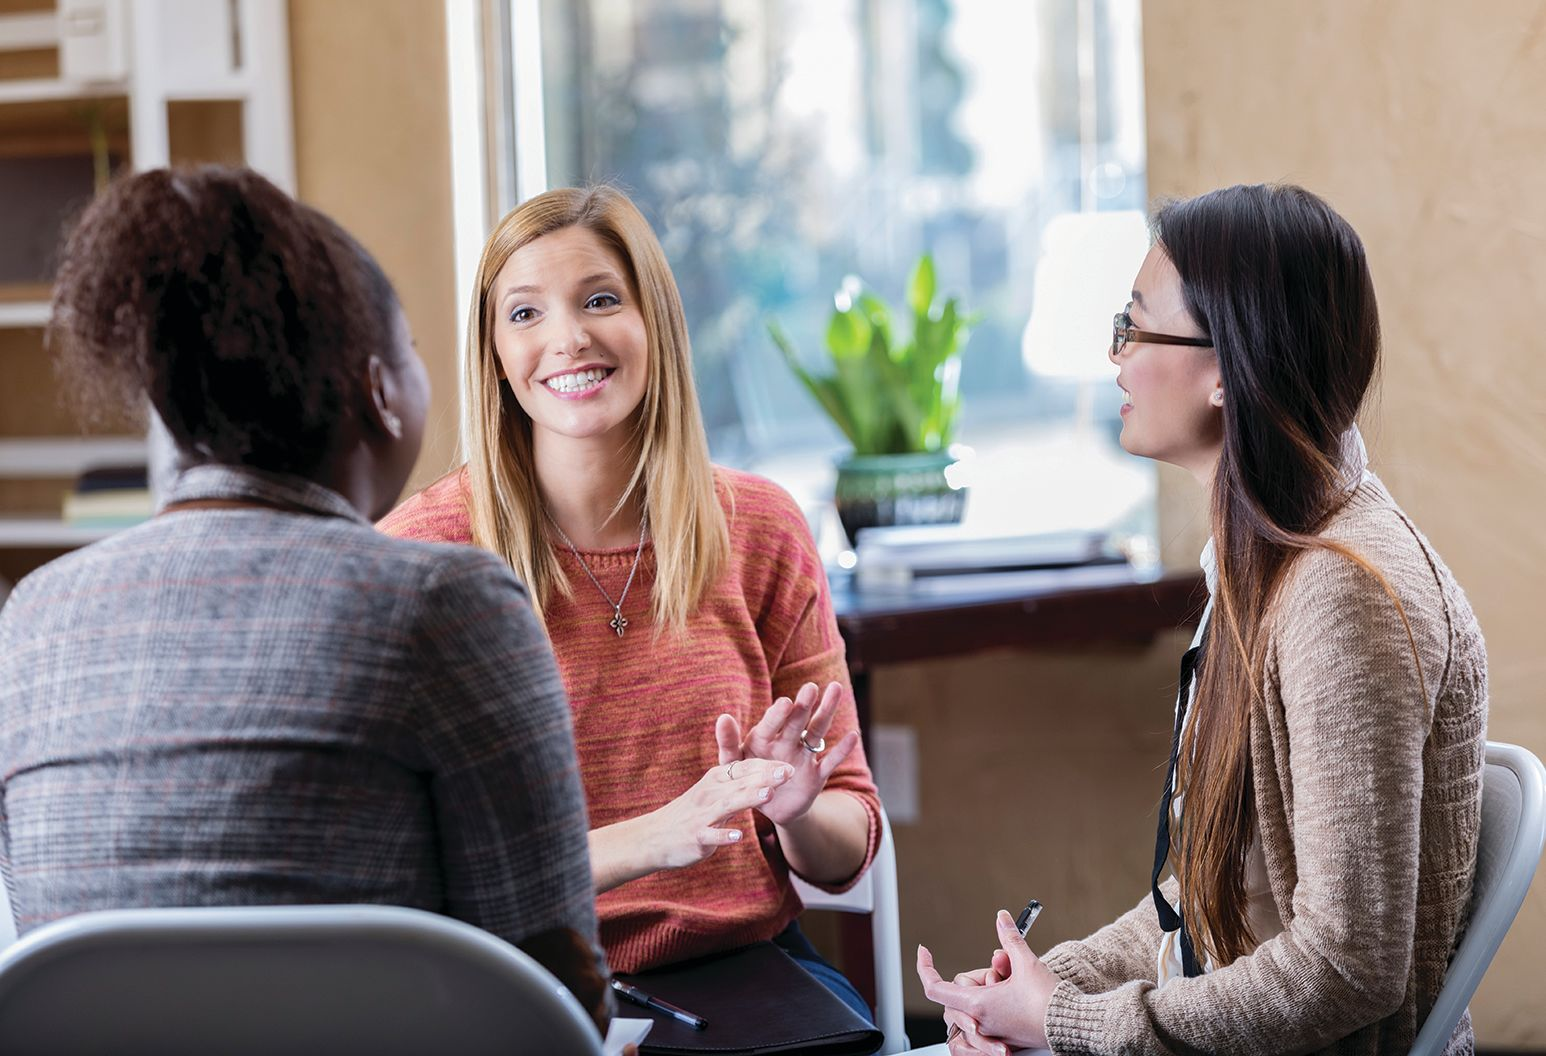 Beautiful mid adult Caucasian woman shares emotions during group therapy session. She is talking with mid adult African American woman and young Asian woman.